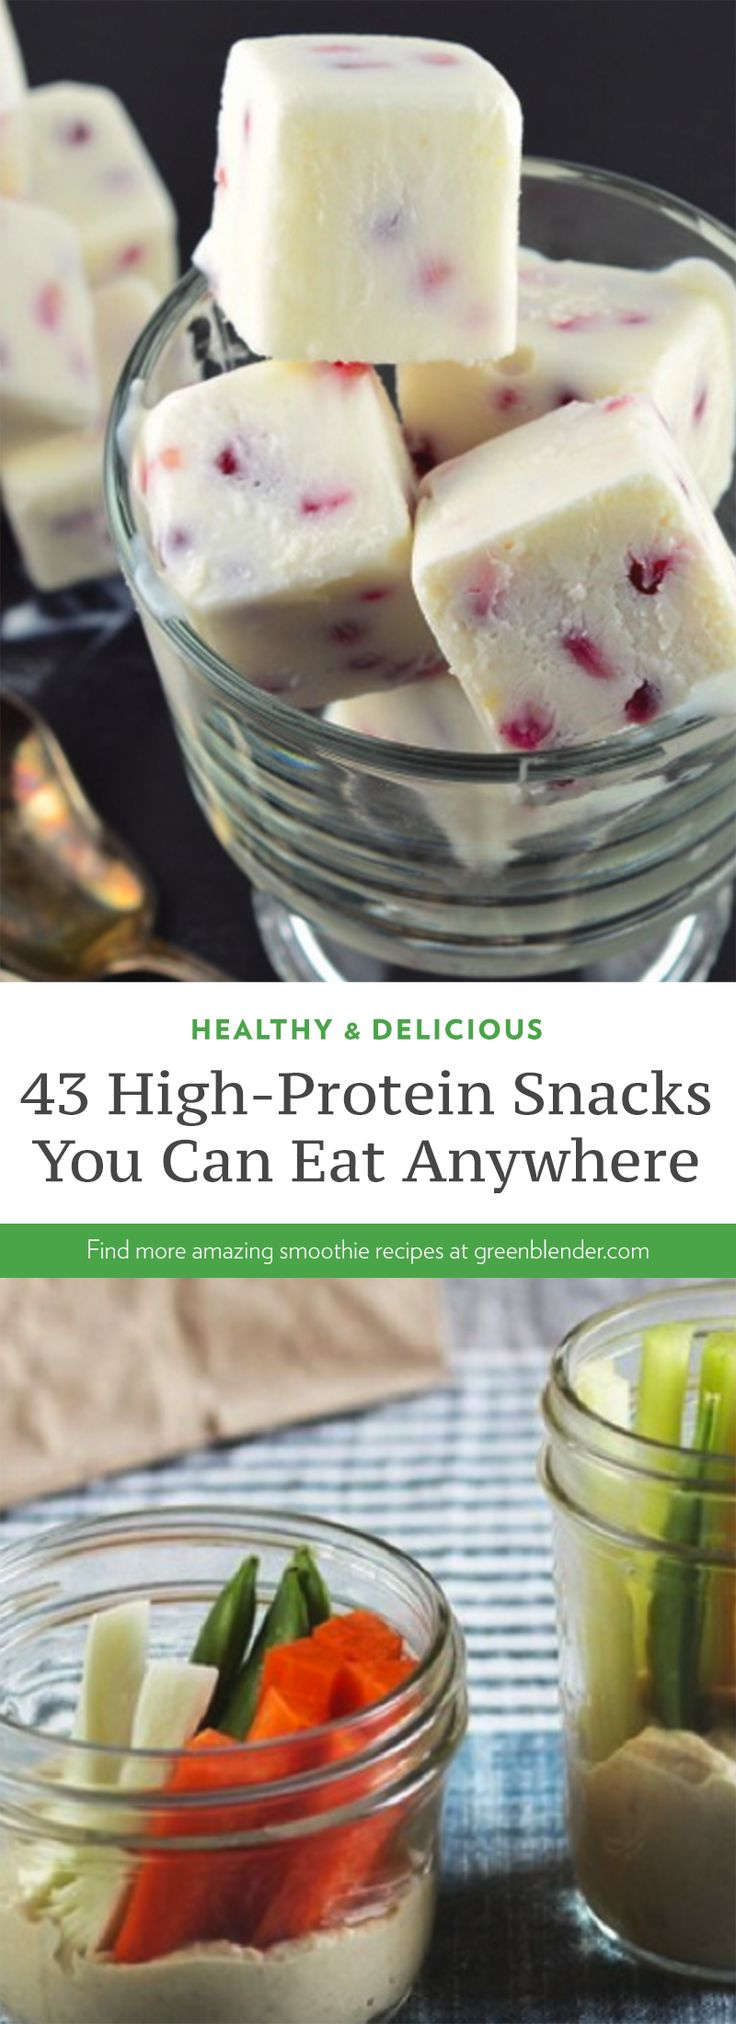 43 high protein snacks you can eat anywhere by GreenBlender  @ReTweetNGro